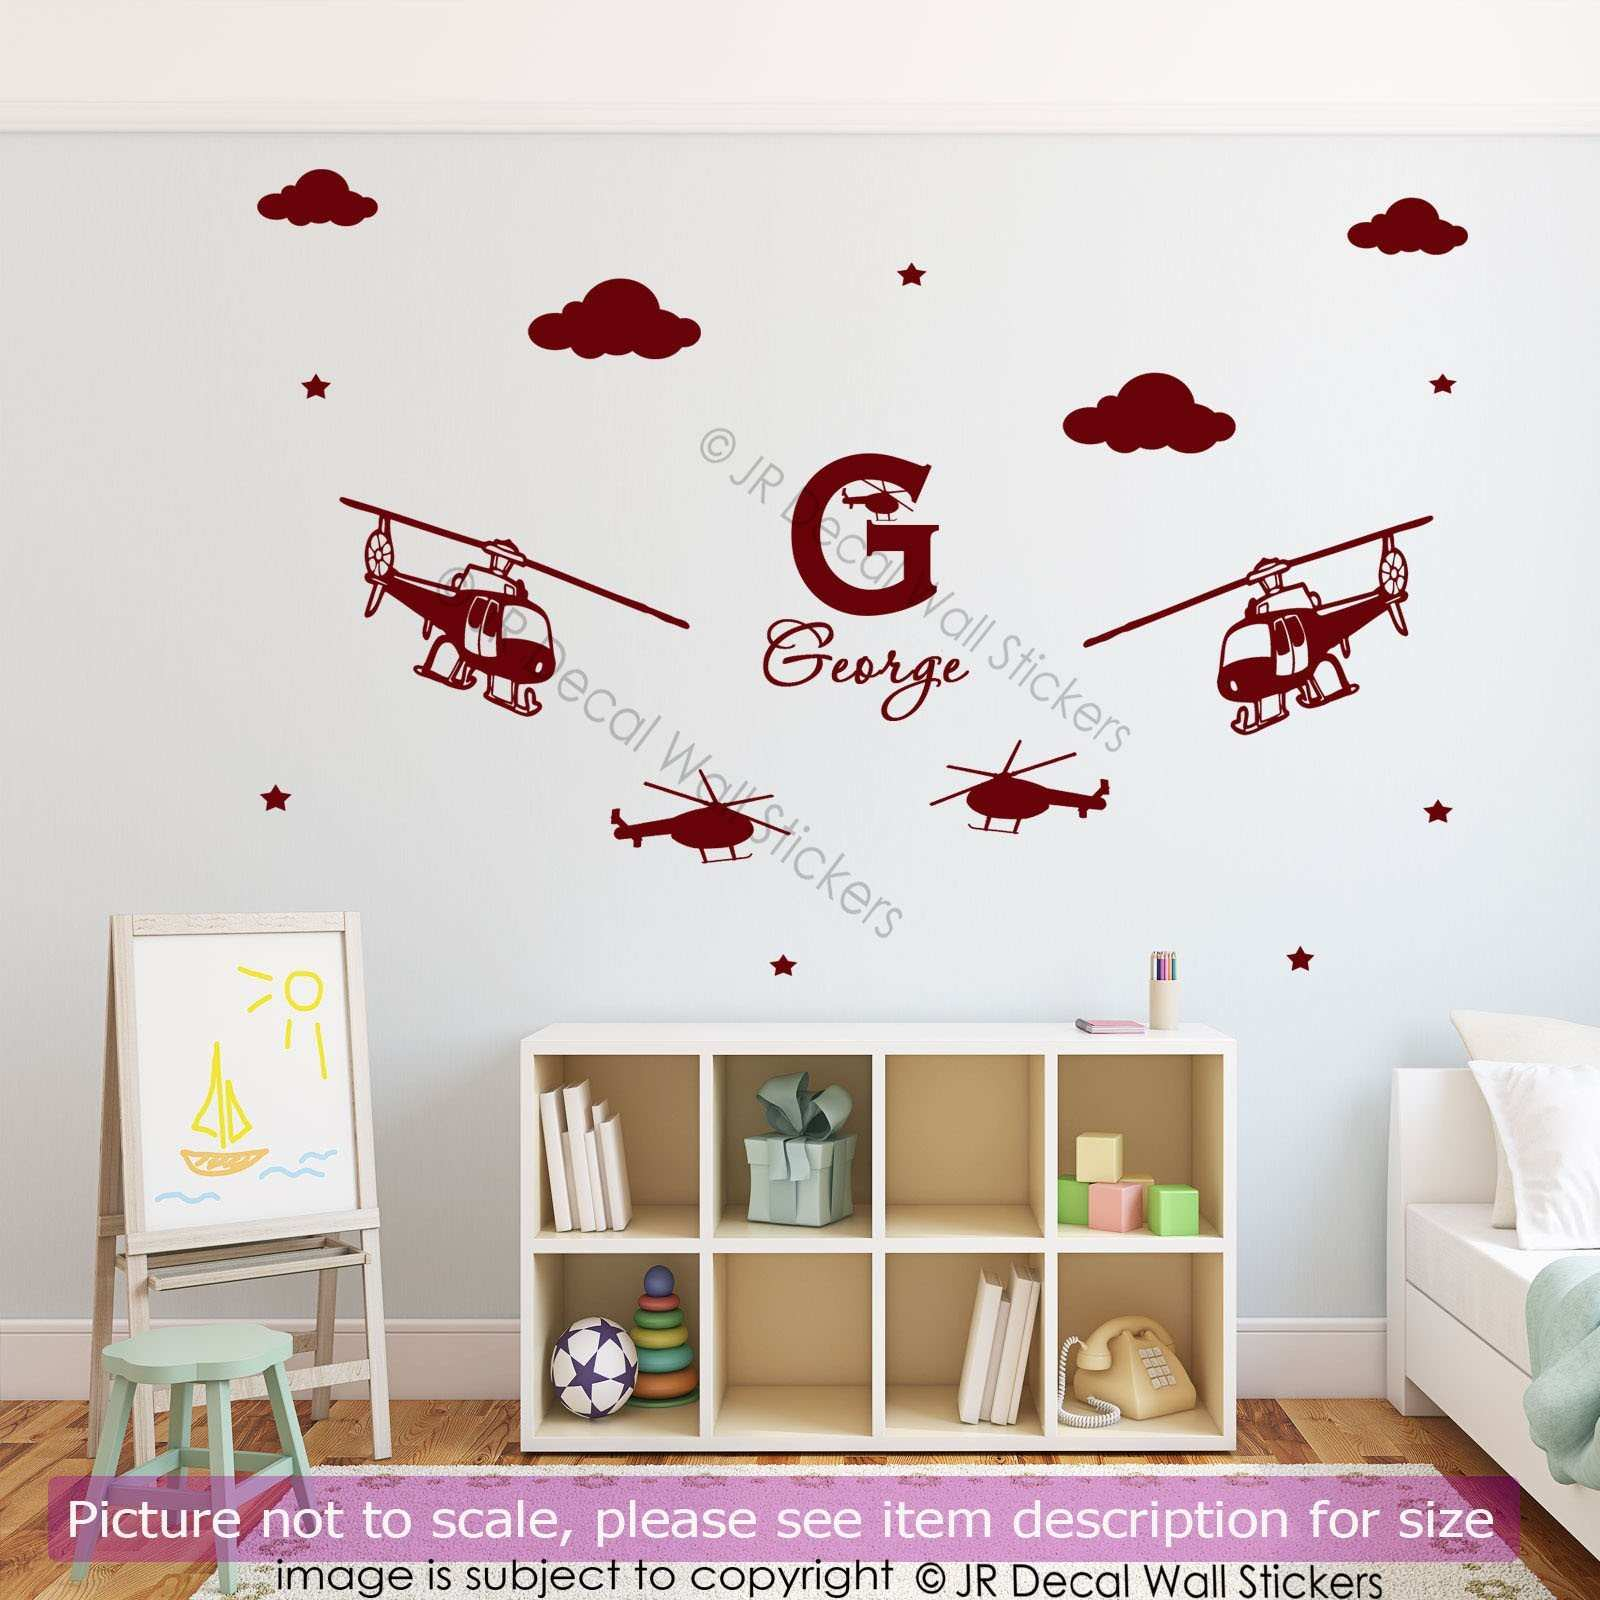 Personalized – JR Decal Wall Stickers